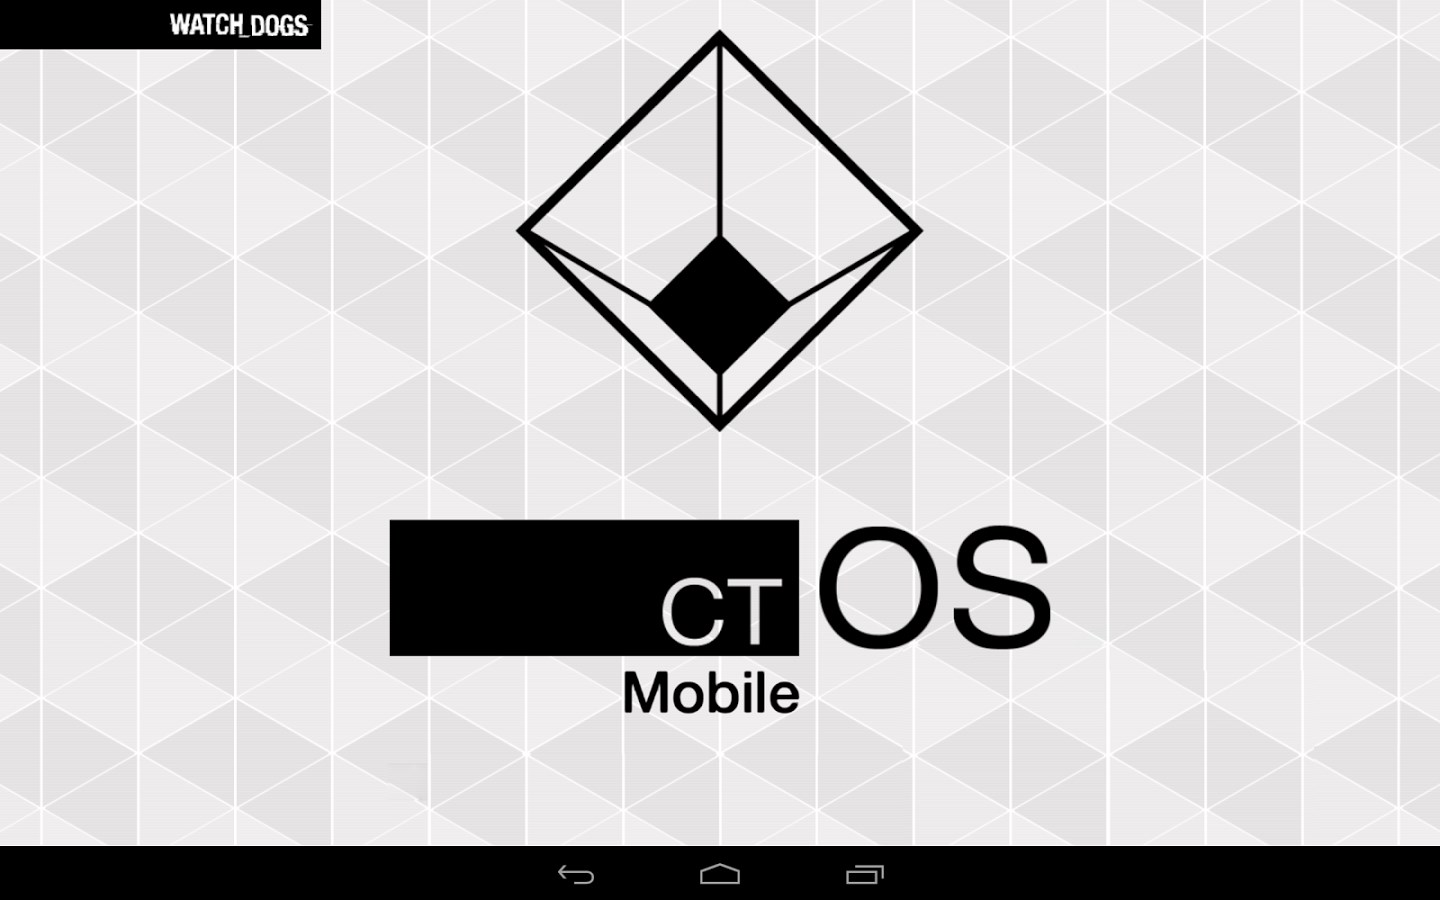 Watch_Dogs Companion: ctOS Download